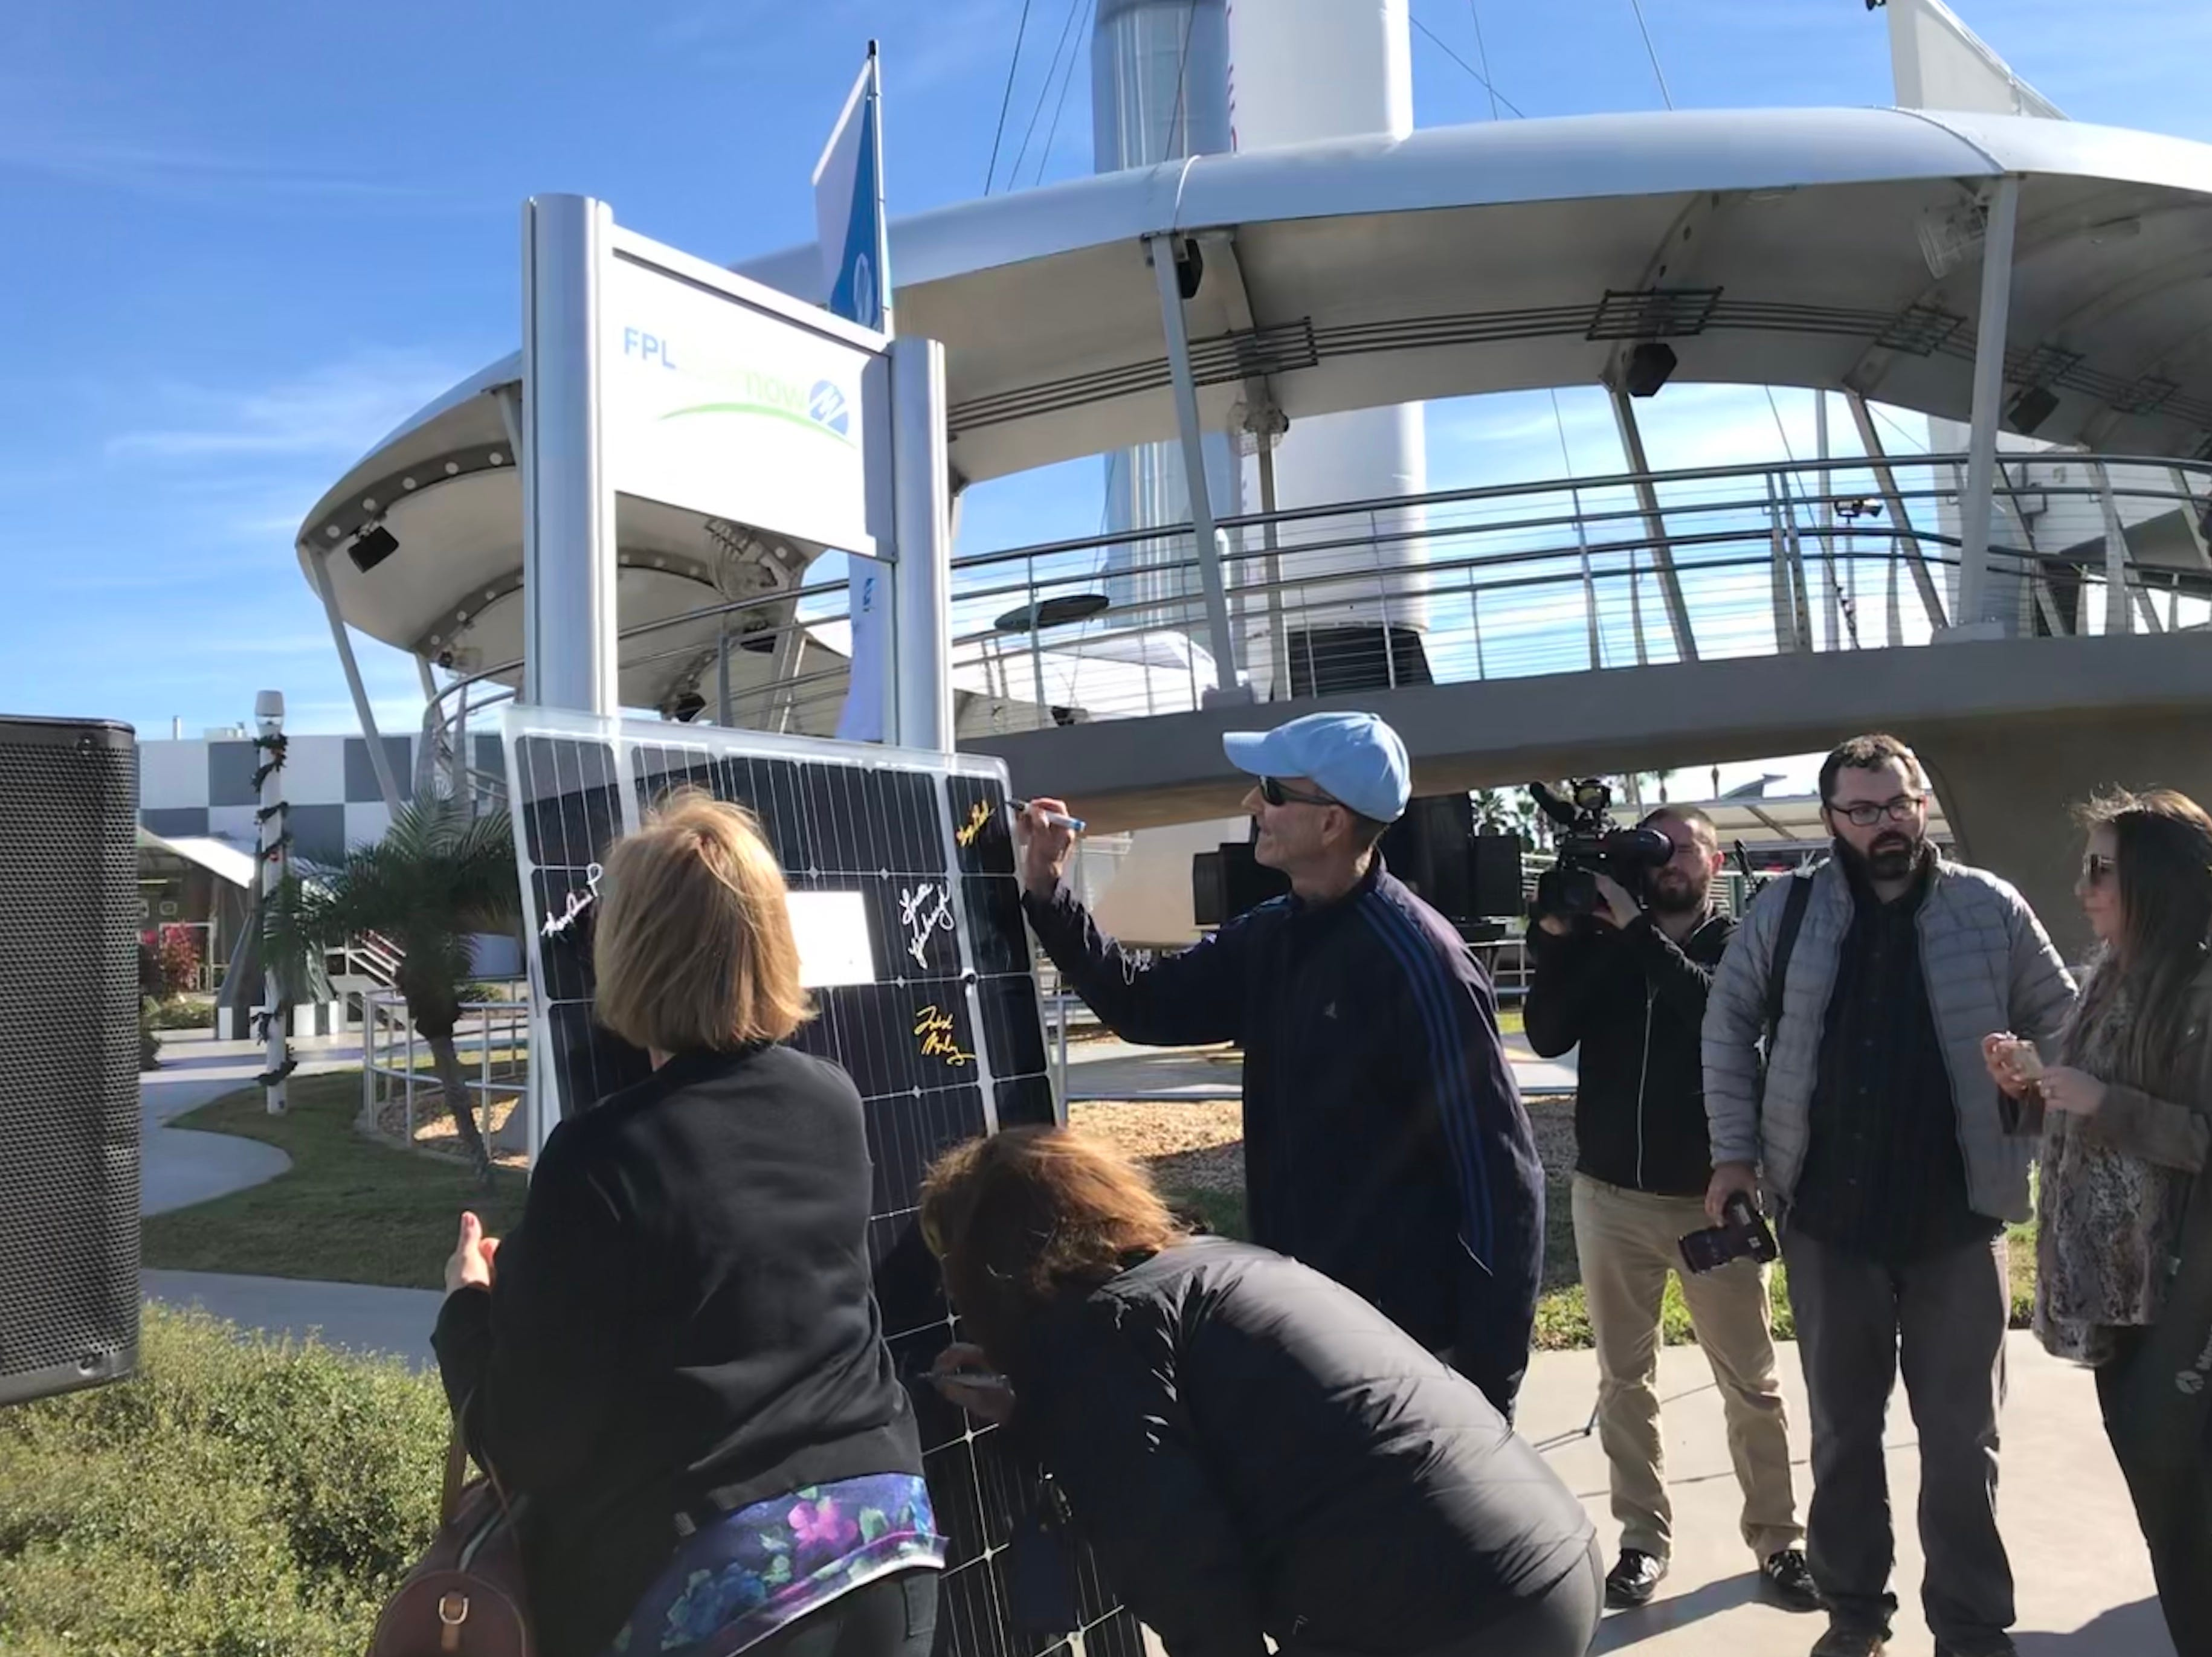 Florida Power & Light SolarNow participants sign a decorative solar panel at Kennedy Space Center Visitor Complex.